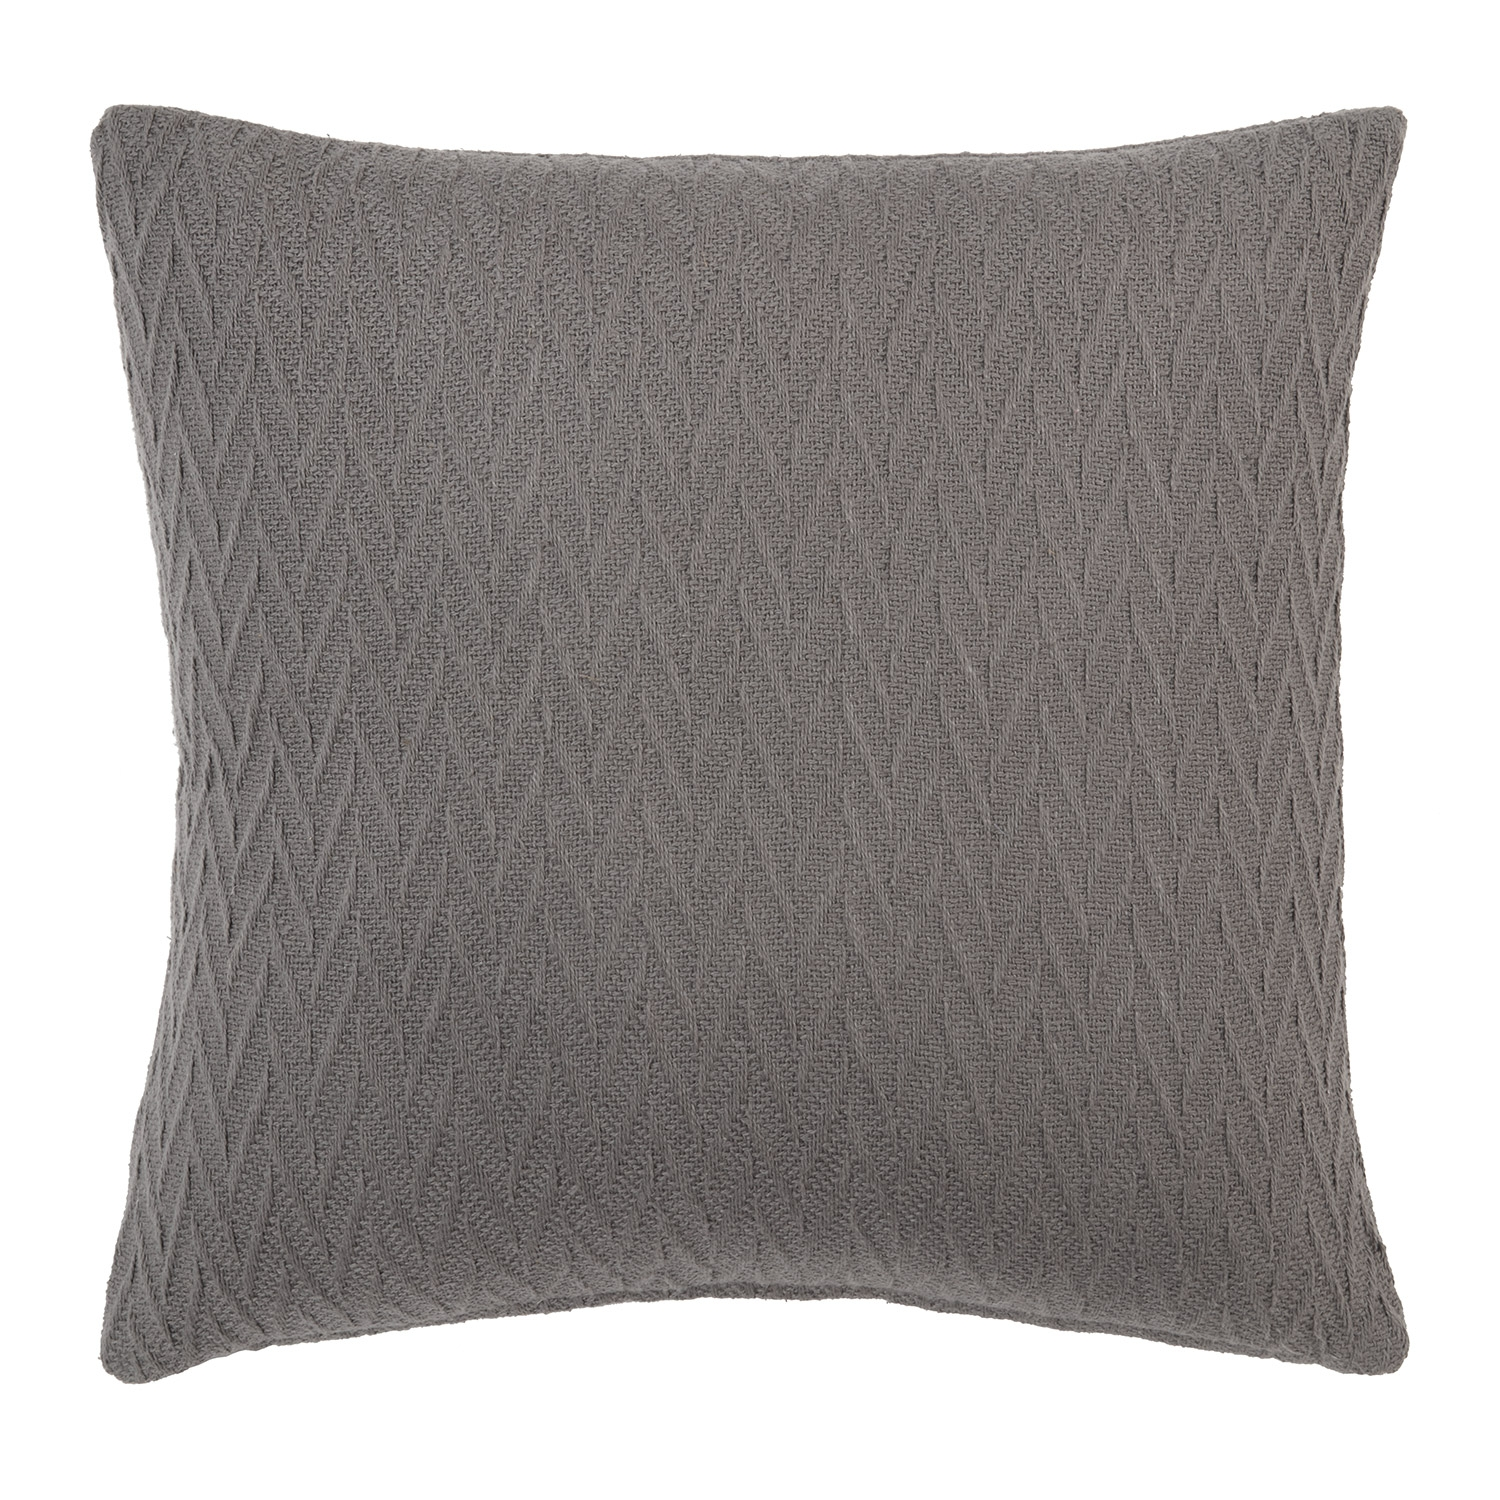 Casey Charcoal Pure Cotton Filled Square Cushion